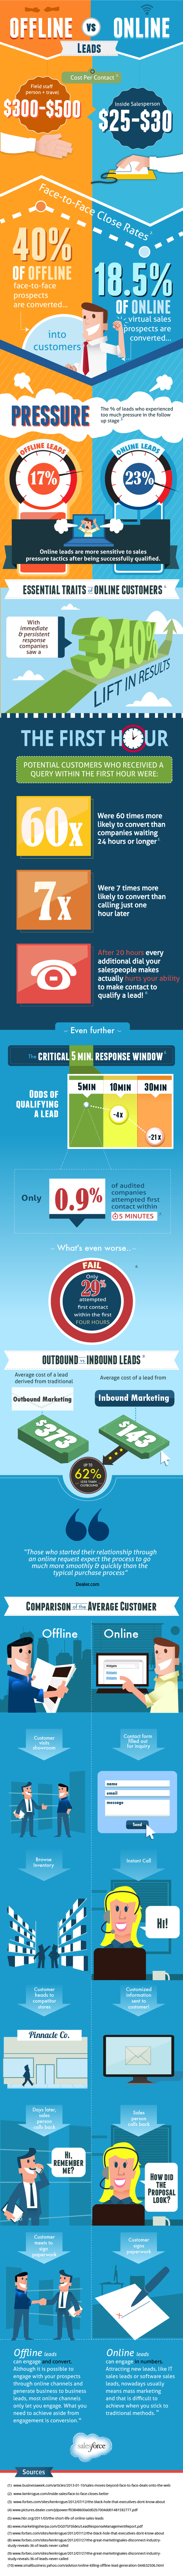 Online Lead Conversion vs. Offline Lead Conversion